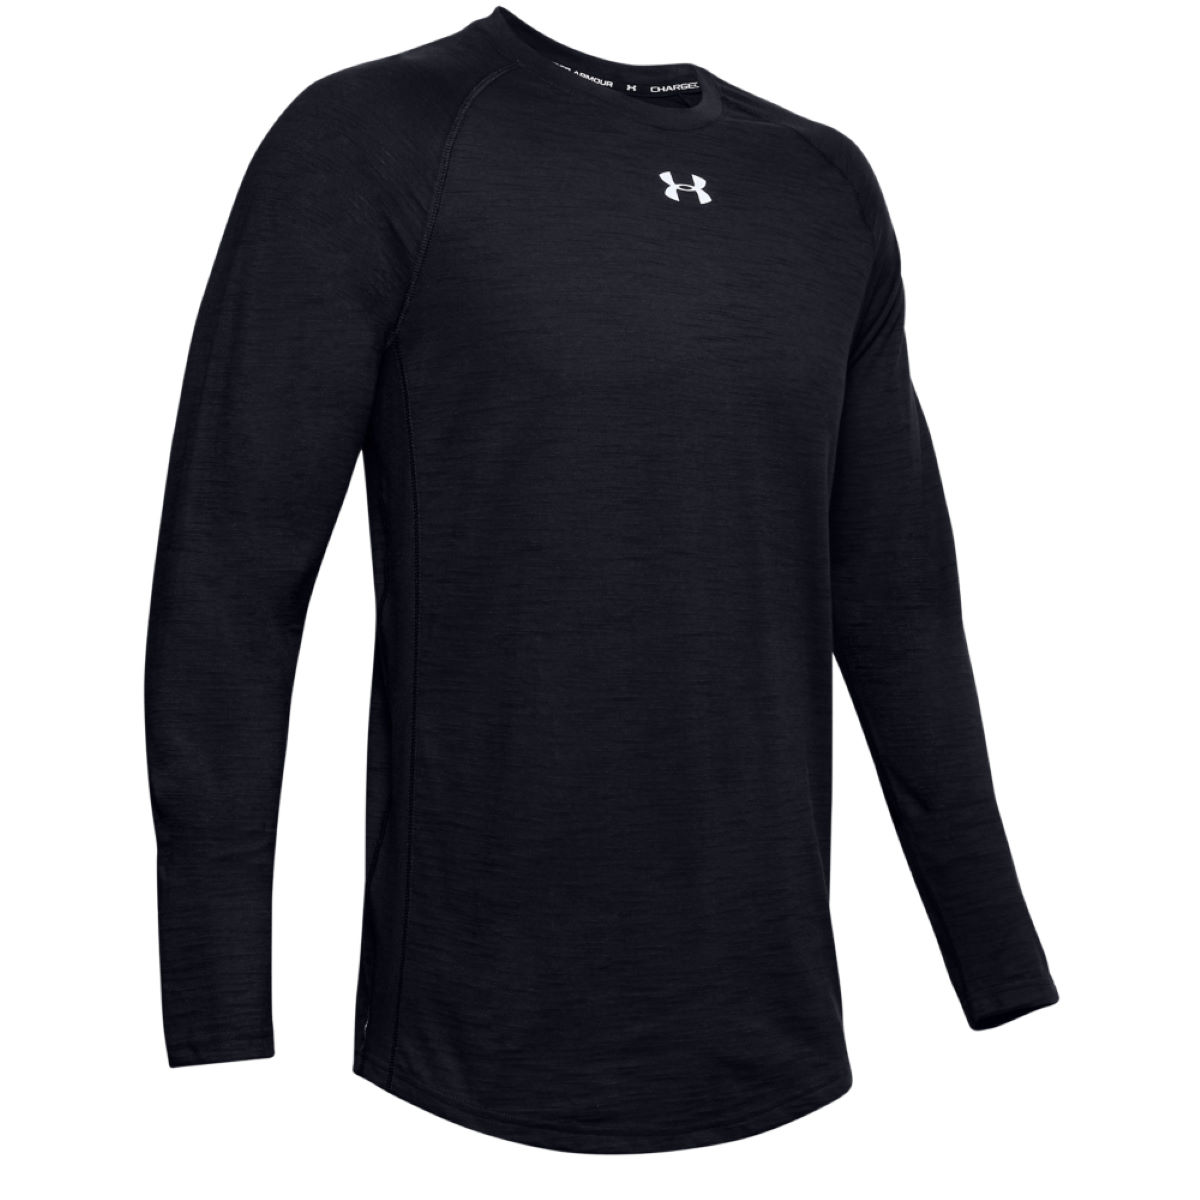 Under Armour Charged Cotton Long Sleeve Top - Medium  Training Tops